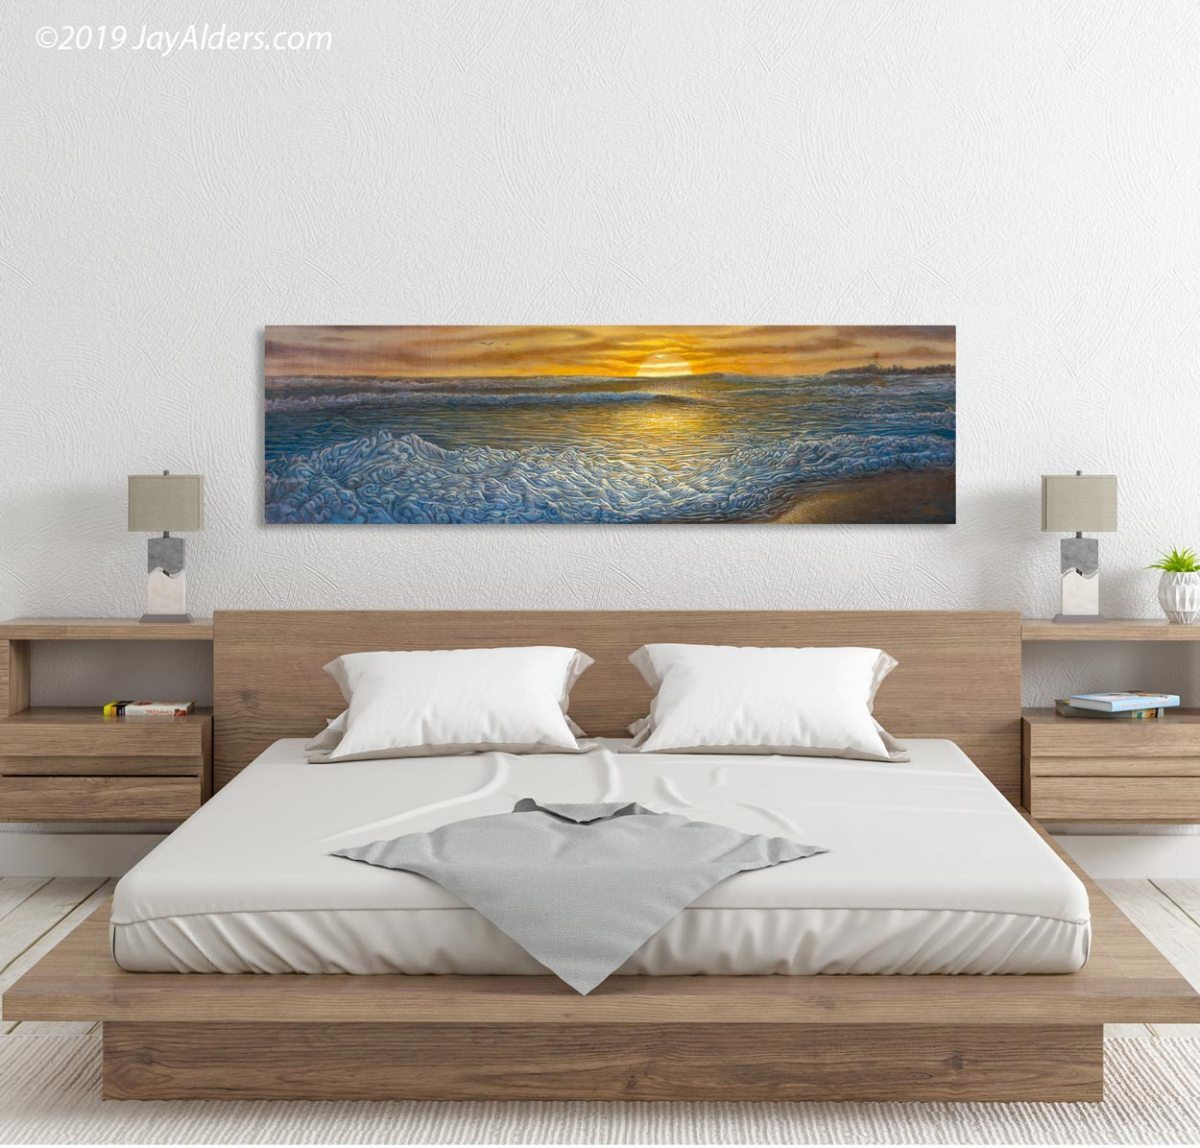 Fall Swell At The Inlet - Contemporary Surf Ocean Print of Manasquan NJ